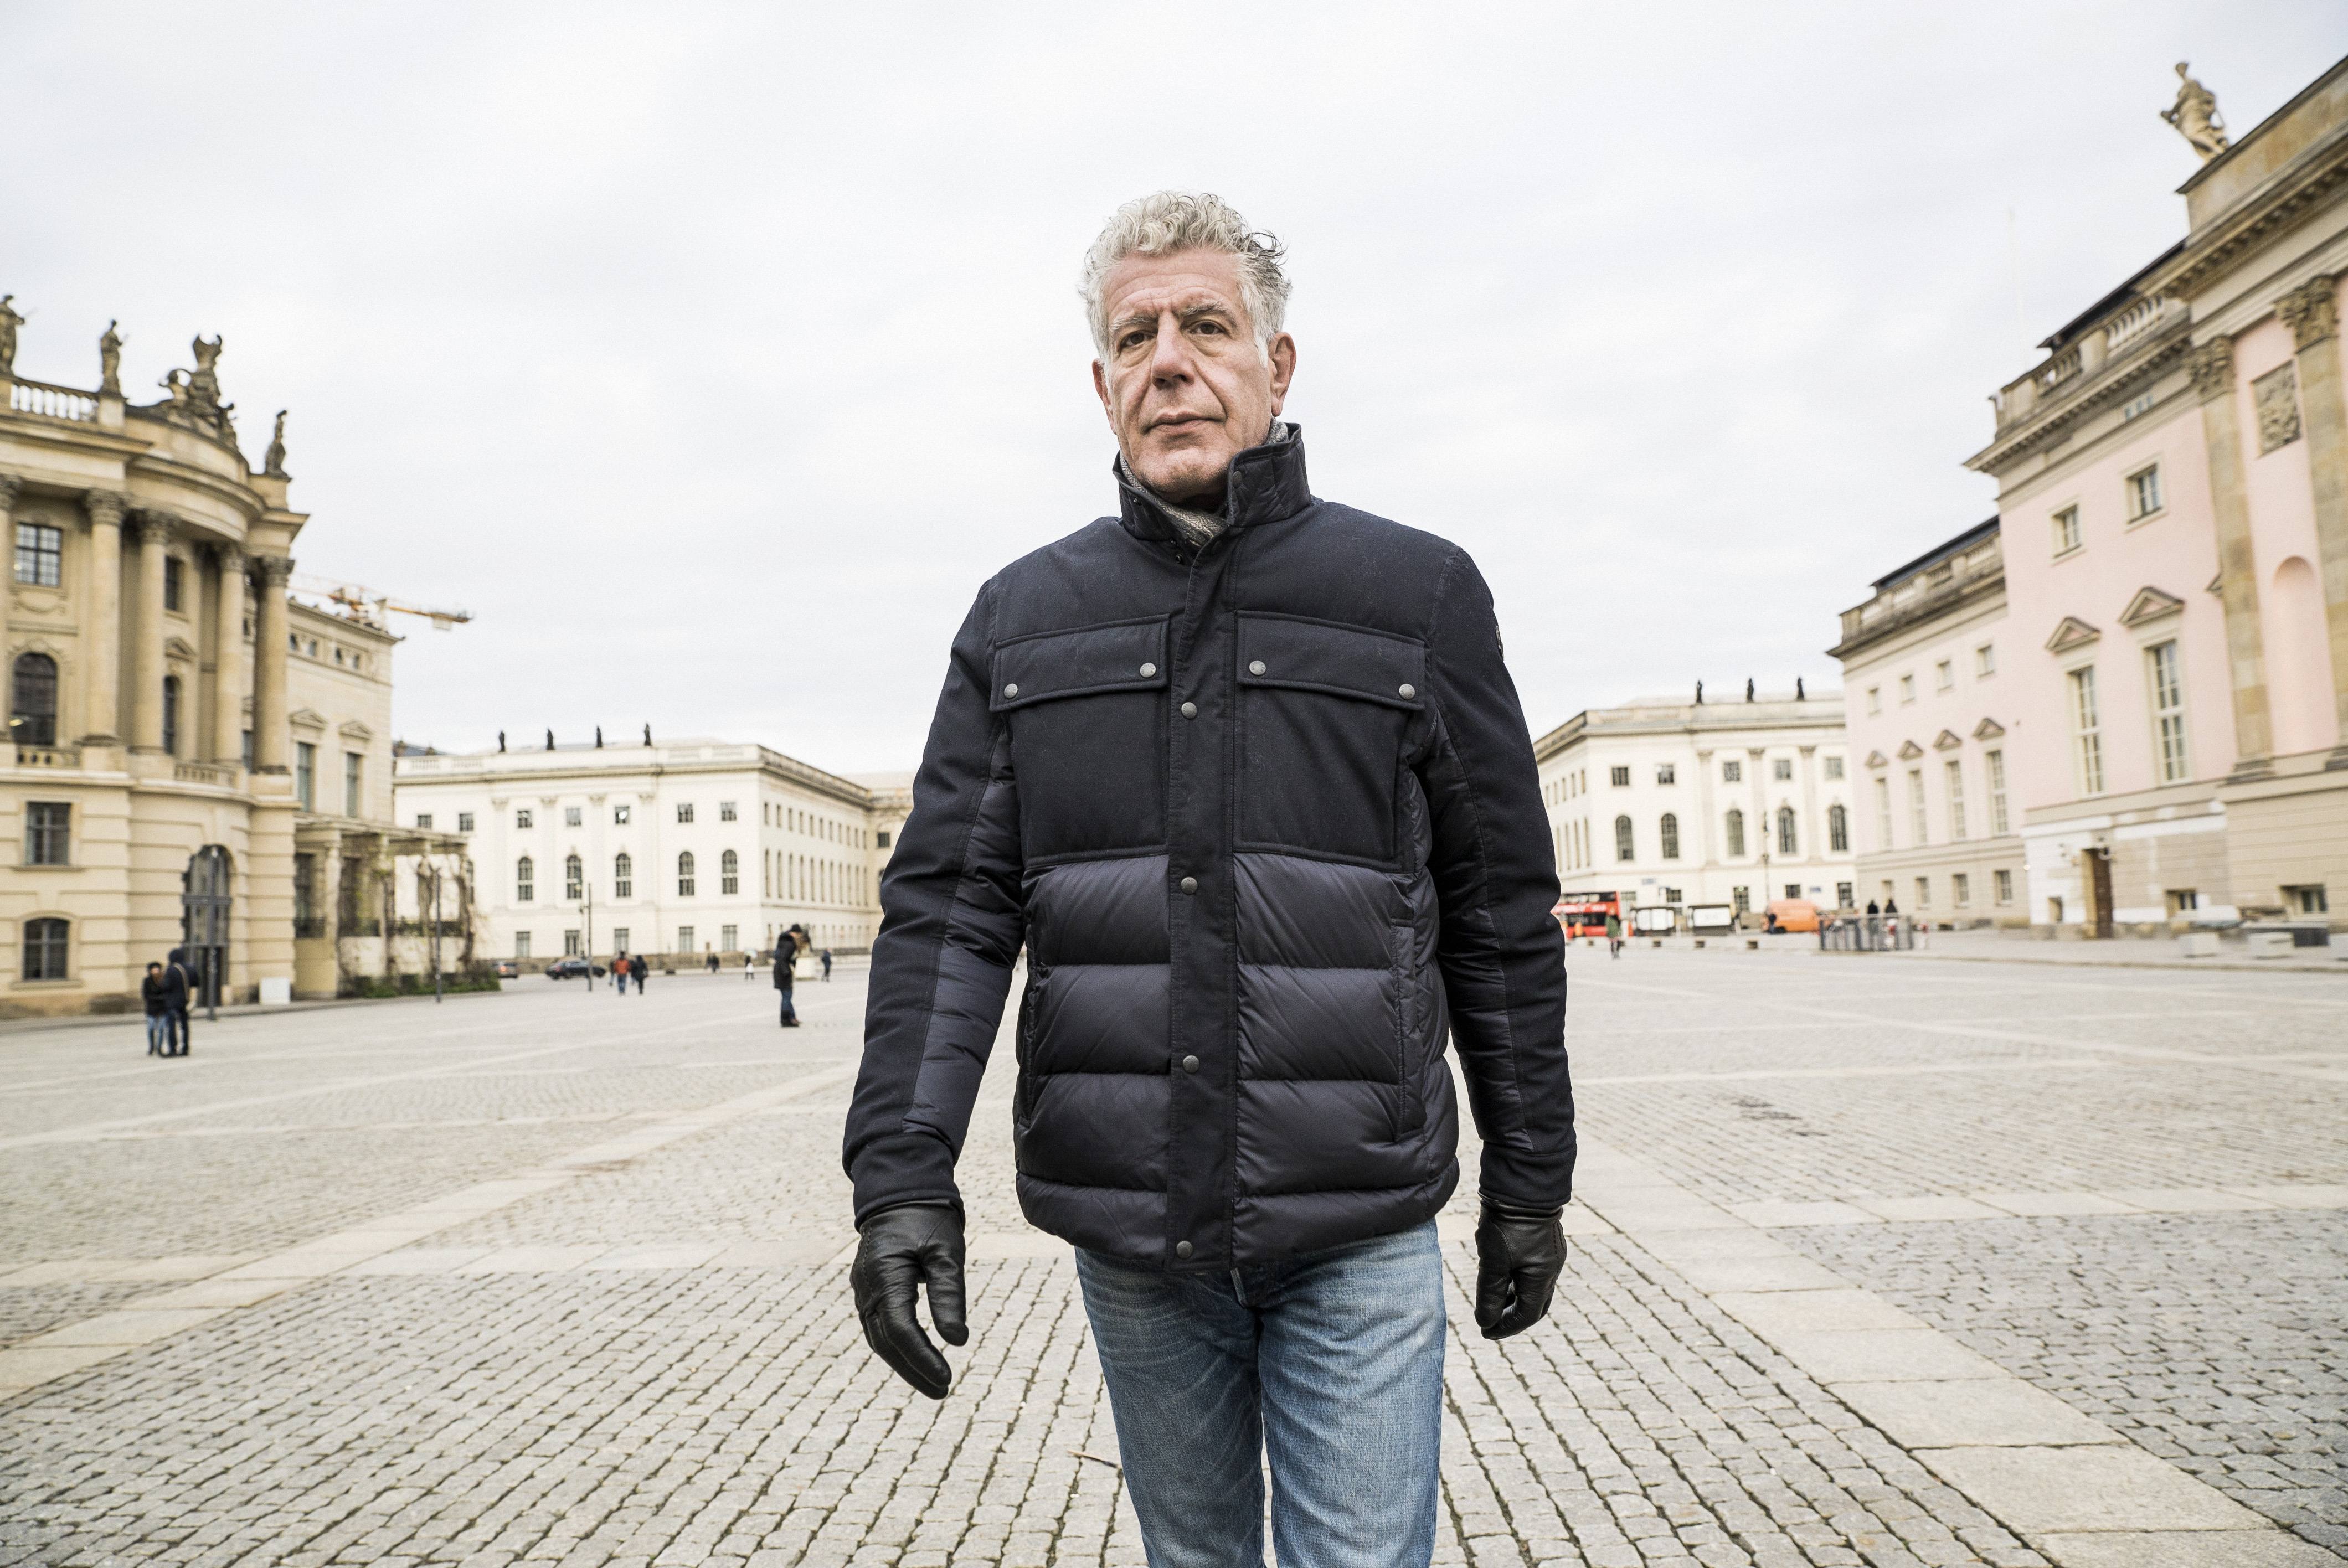 Anthony Bourdain strides forward in an outdoor plaza.